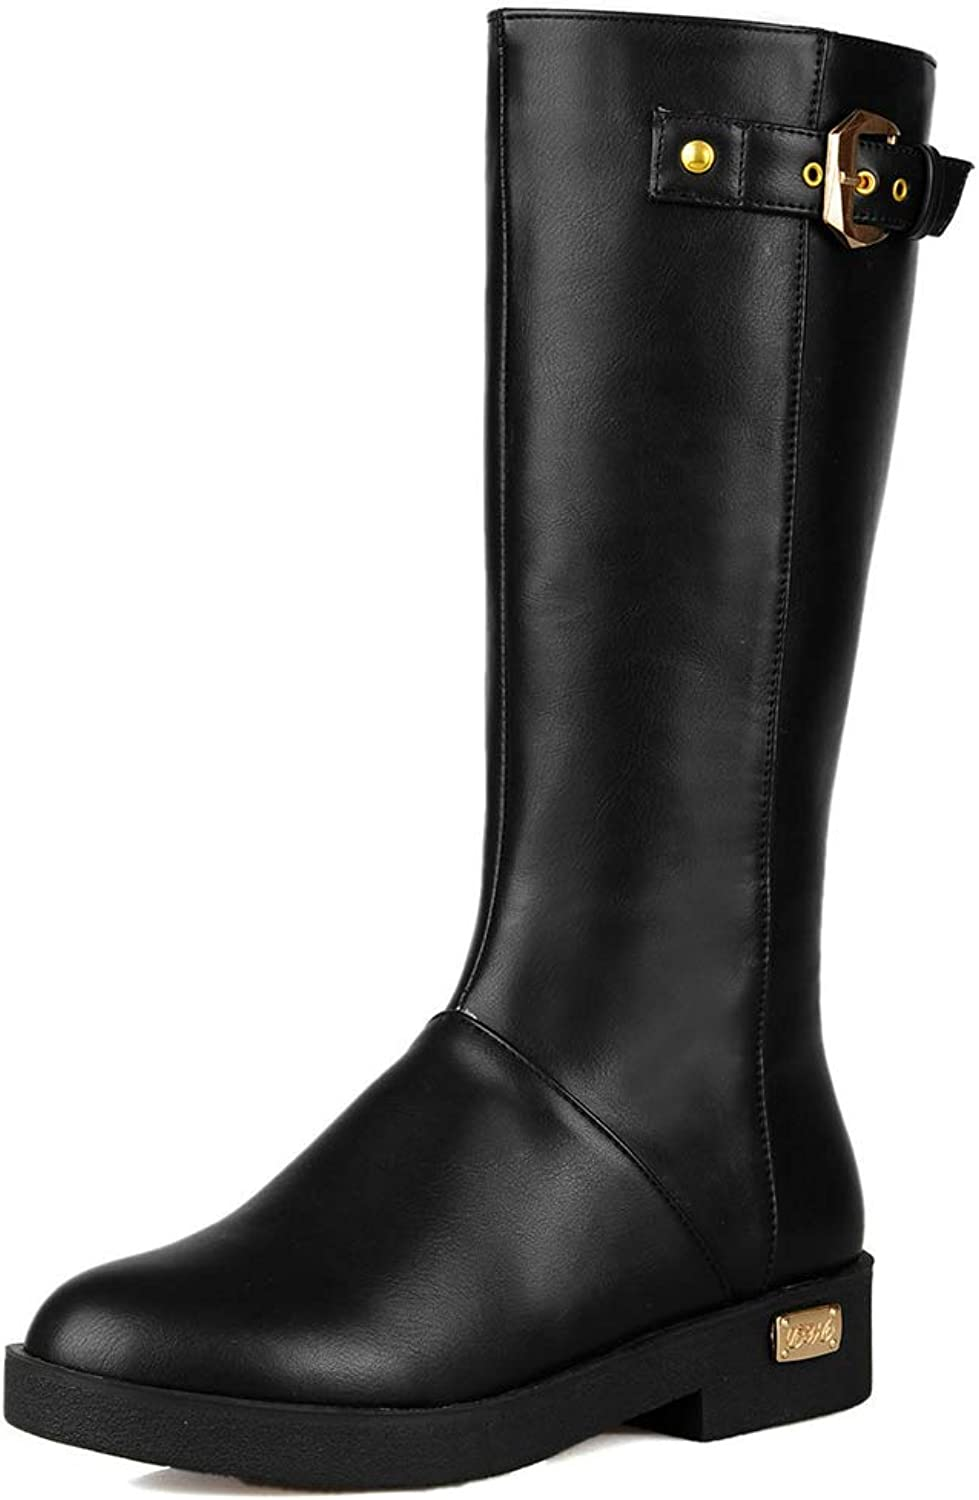 Hoxekle Knee High Boots Low Heel Black Brown Female Winter Warm Fashion shoes Buckle Platform Long Boot